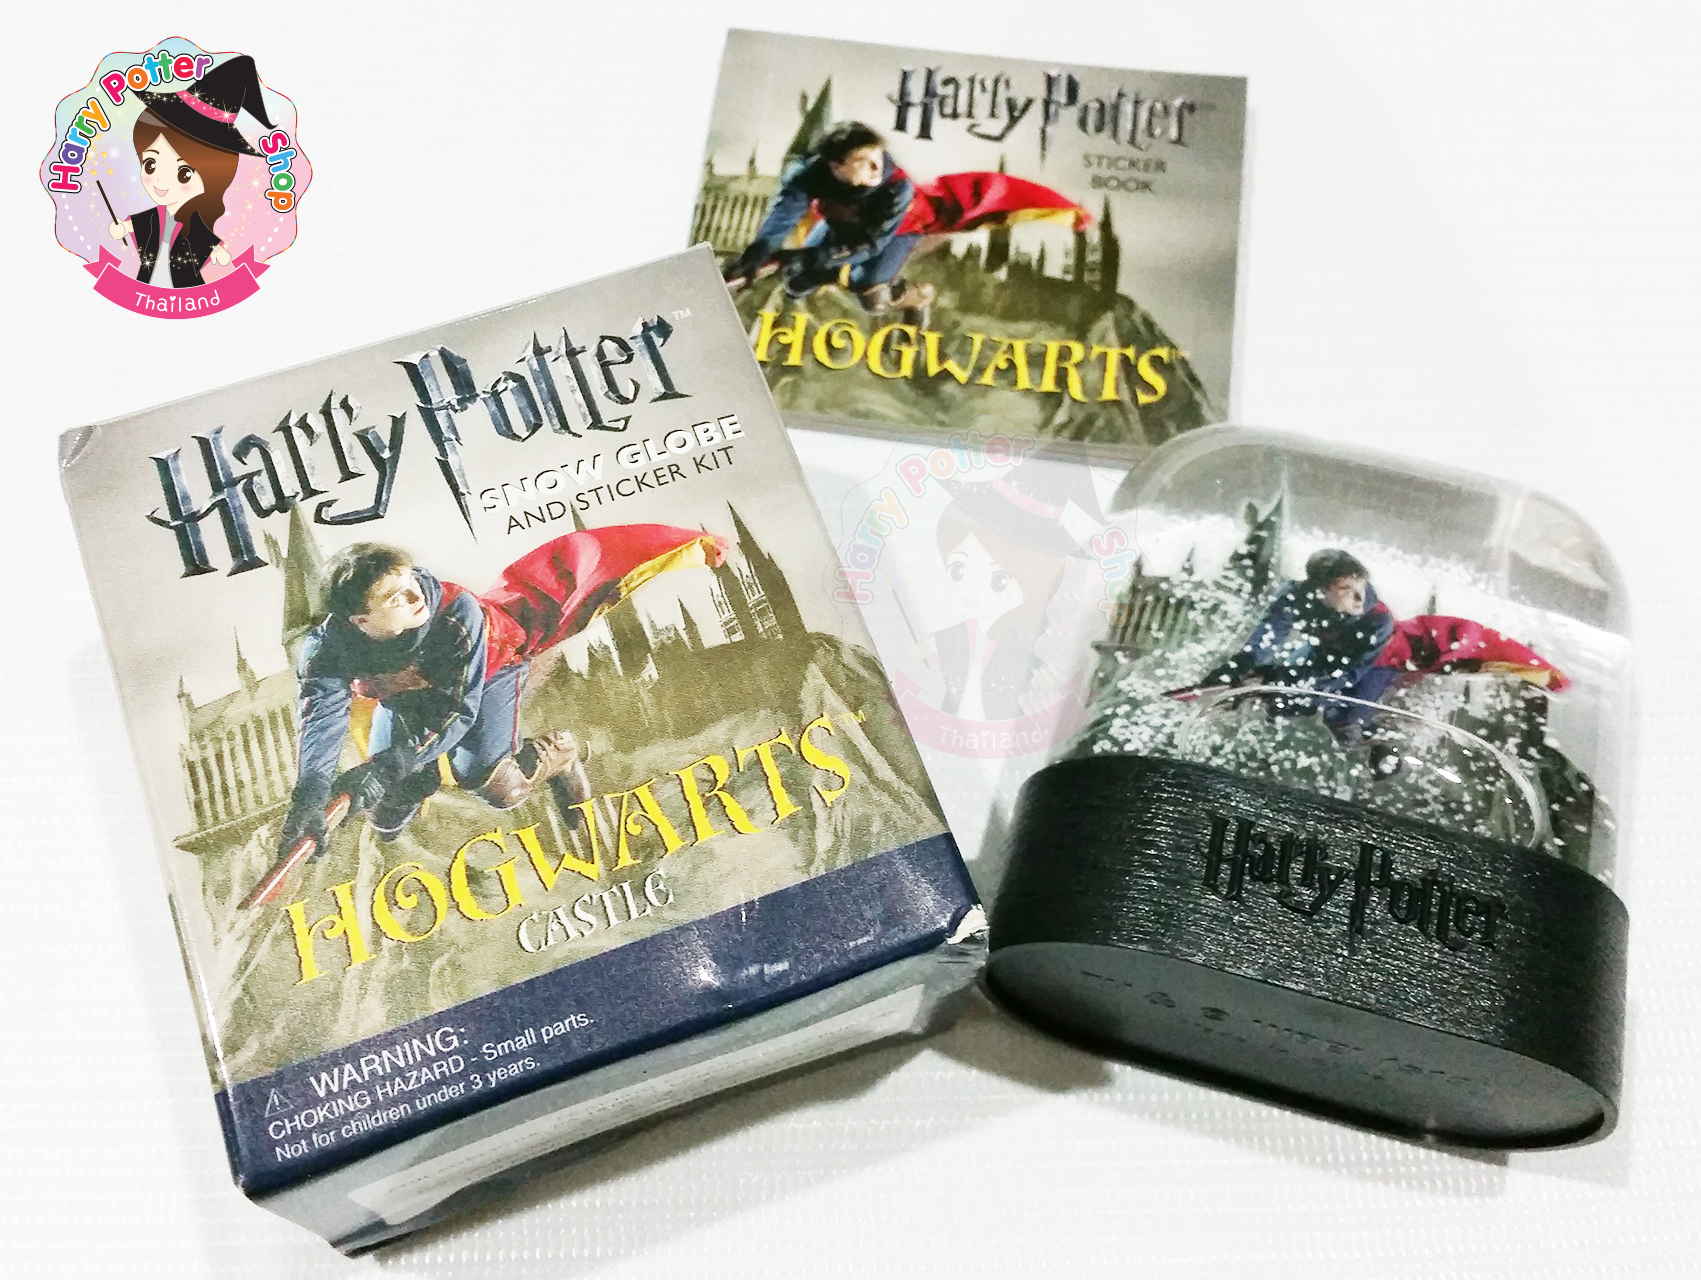 Harry Potter Hogwarts Castle Snow Globe and Sticker Kit